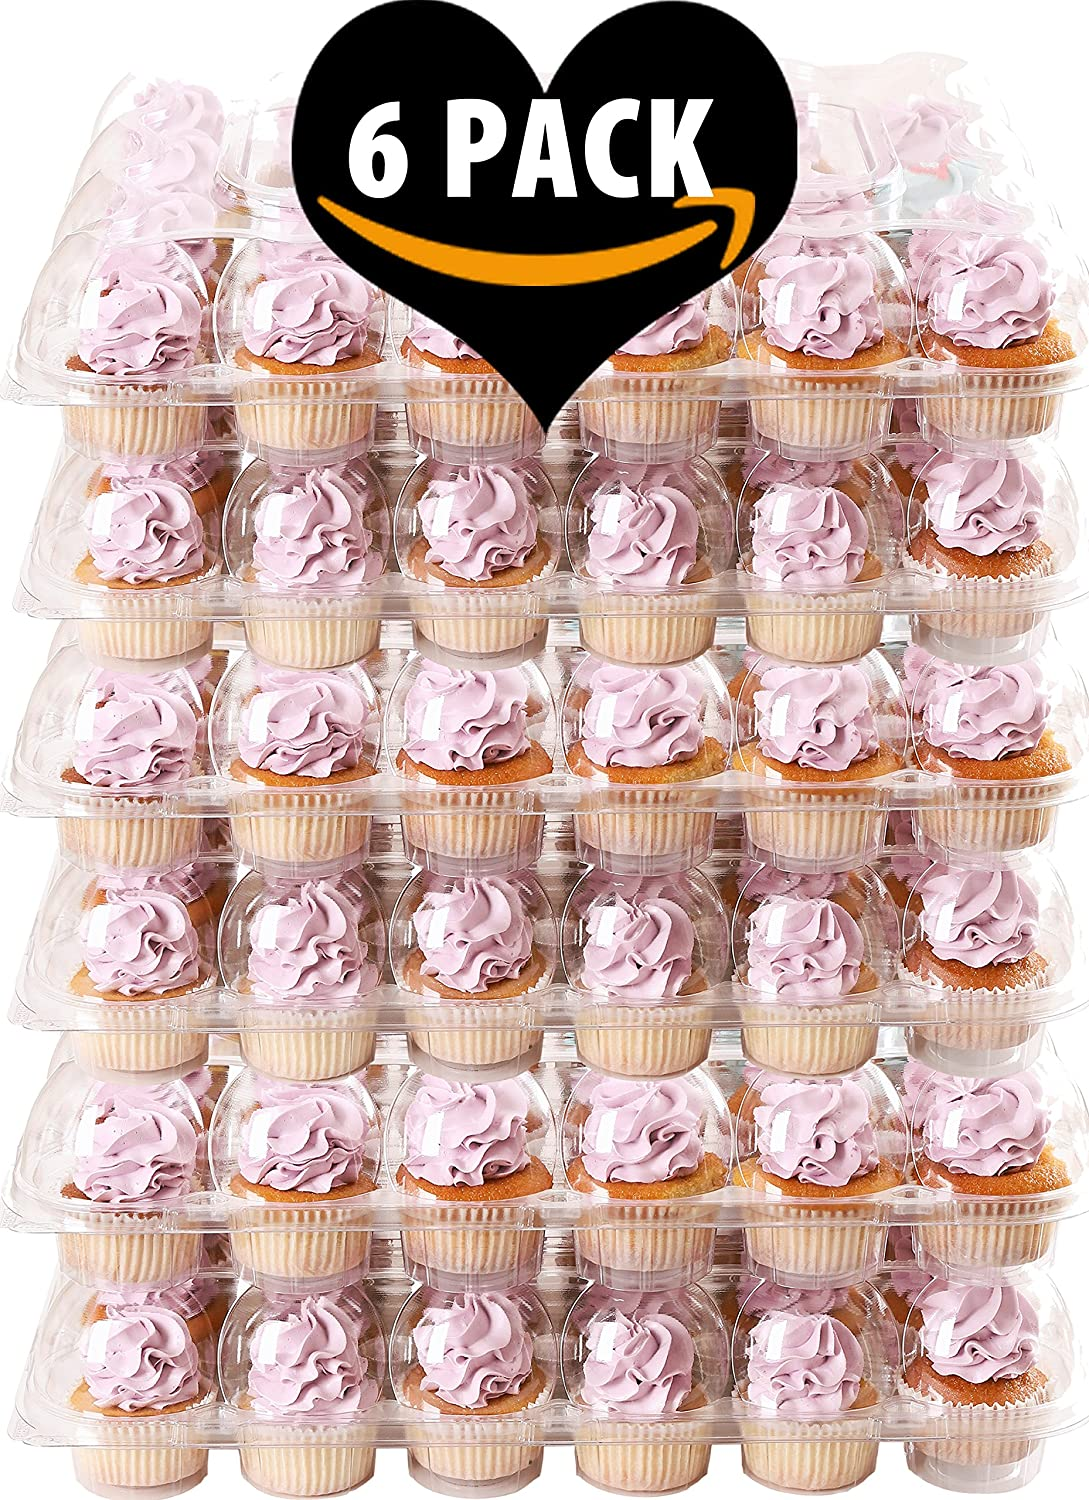 (6 Pack) Fill'nGo Carrier Holds 24 Standard Cupcakes - Ultra Sturdy Cupcake Boxes | Tall Dome Detachable Lid | Clear Plastic Disposable Containers | Storage Tray | Travel Holder | Also Regular Muffins Cakes of Eden